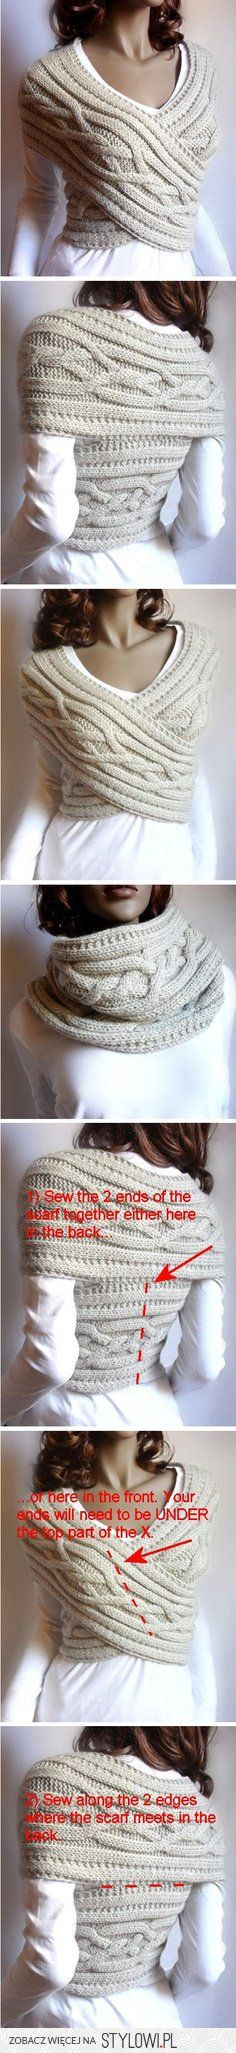 Infinity scarf / sweater vest